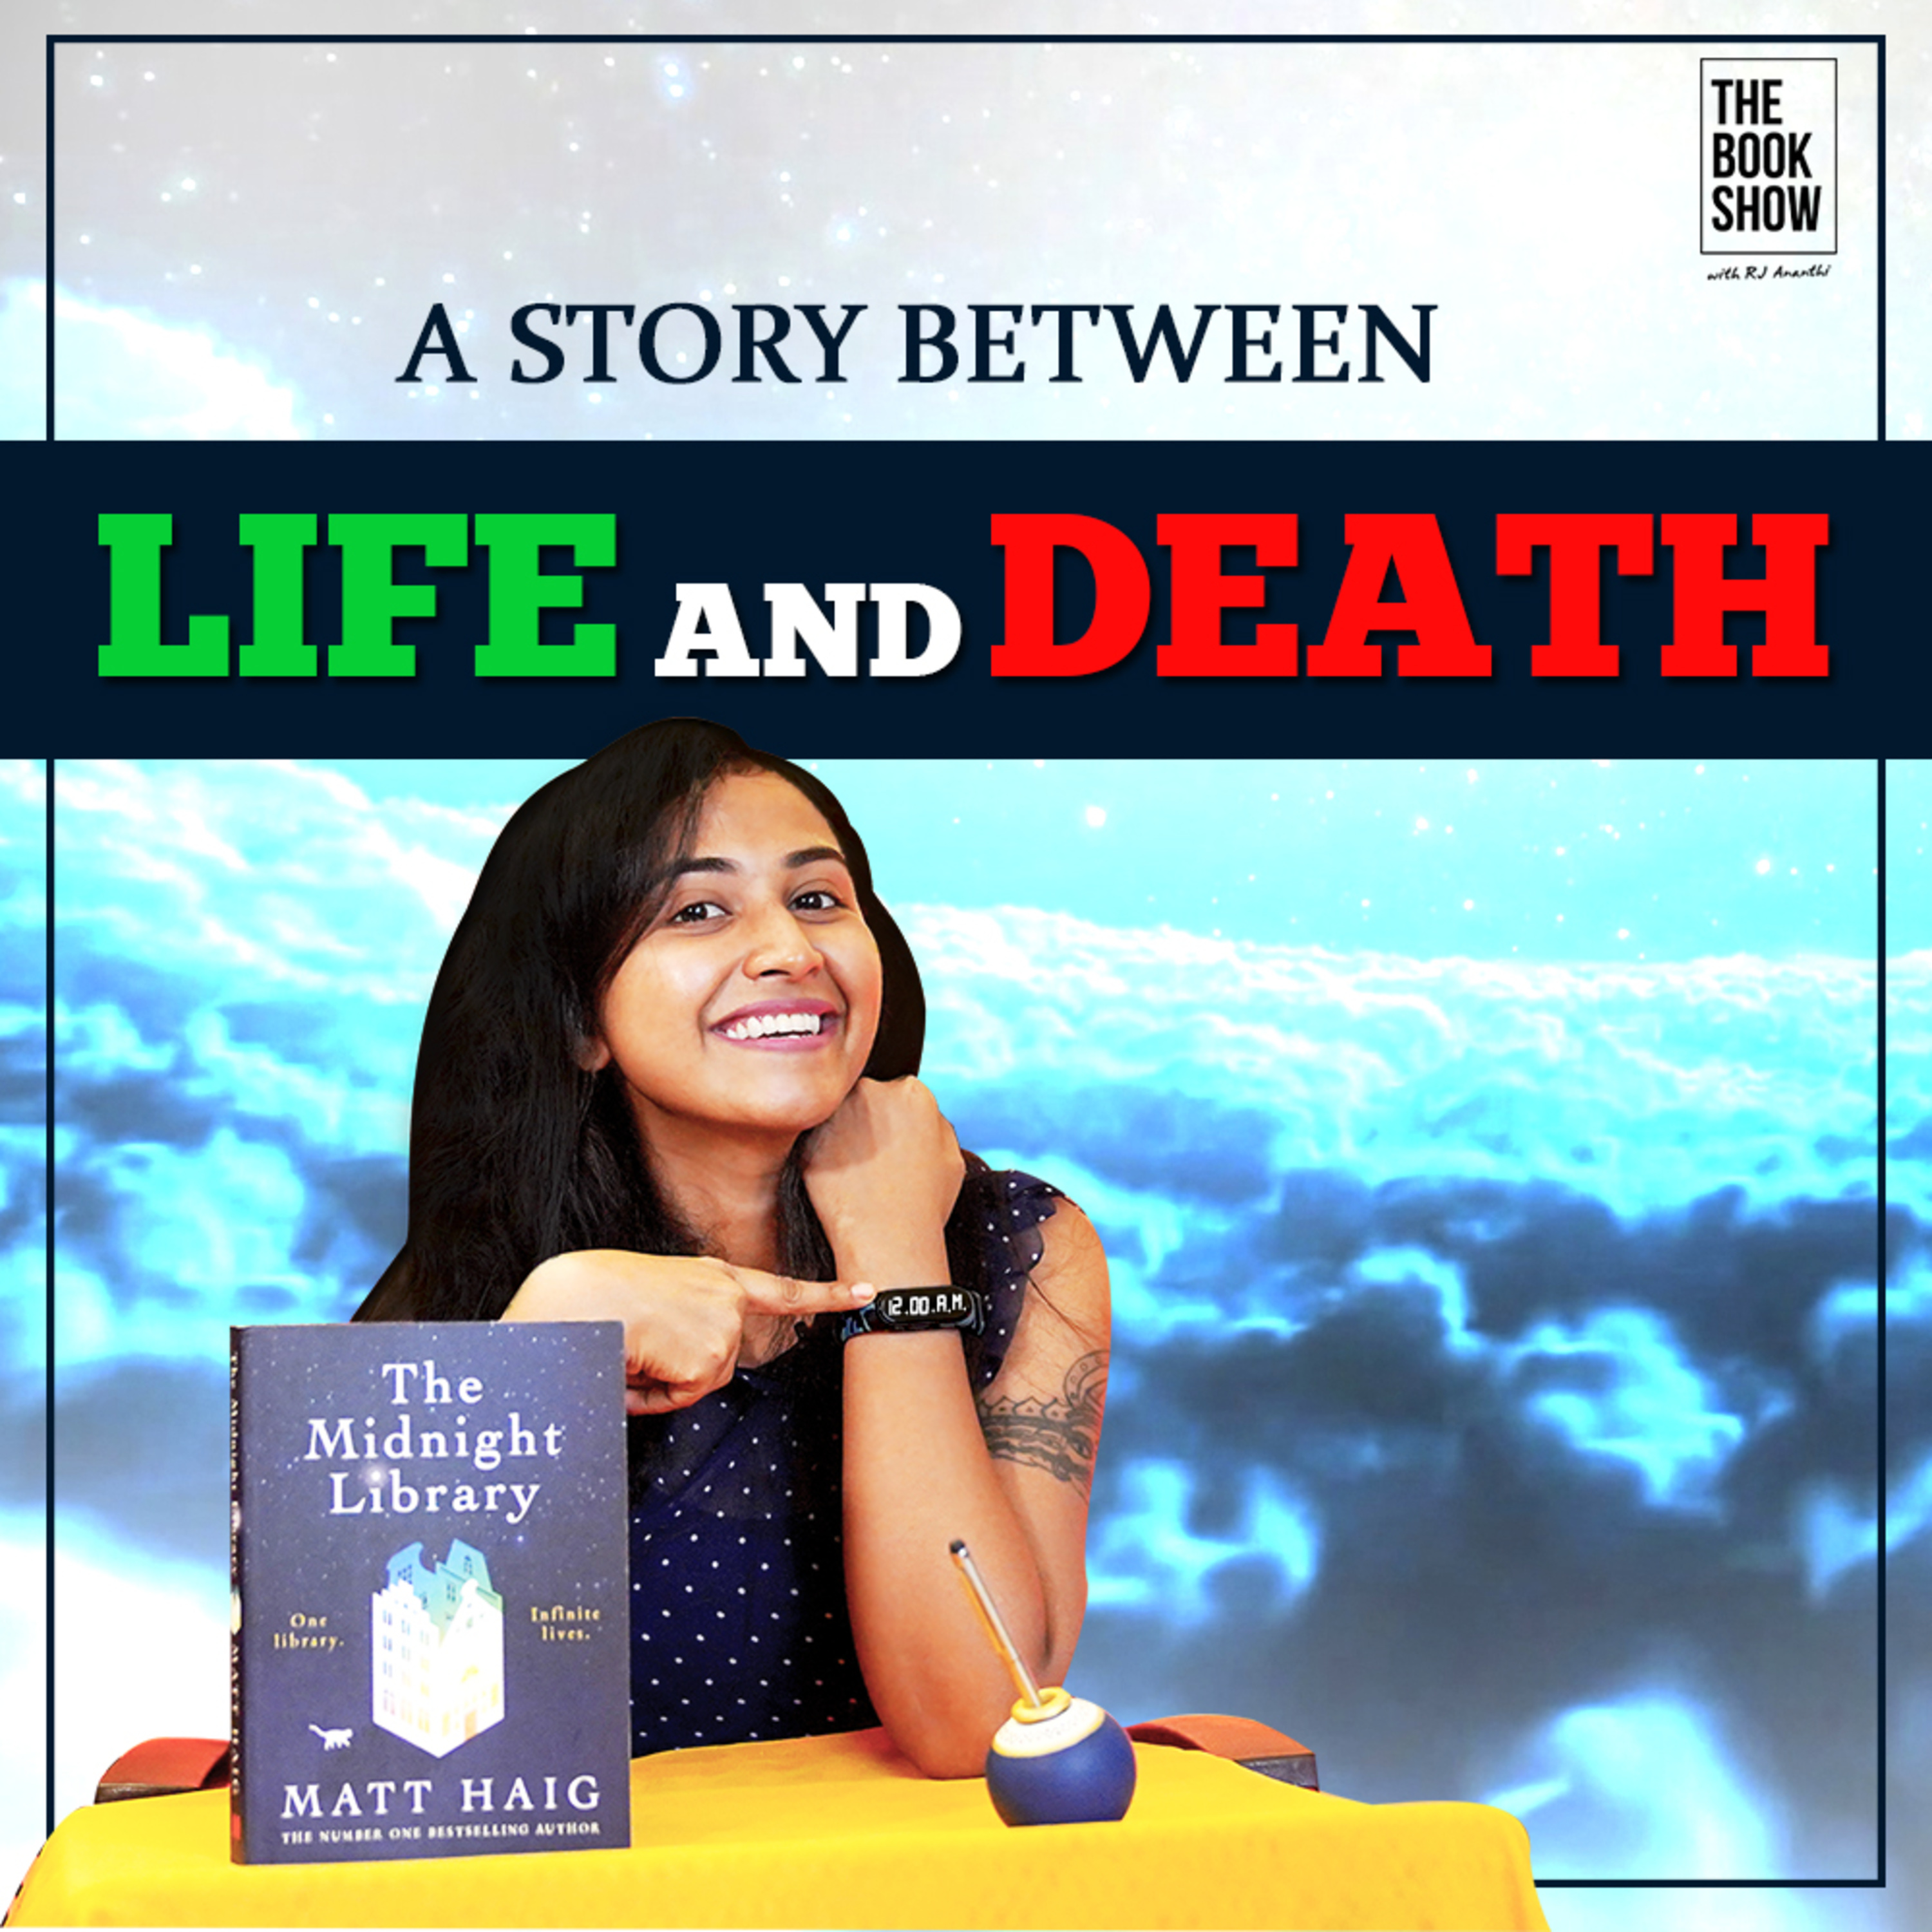 The Midnight Library   Fiction Review ft. RJ Ananthi   The Book Show